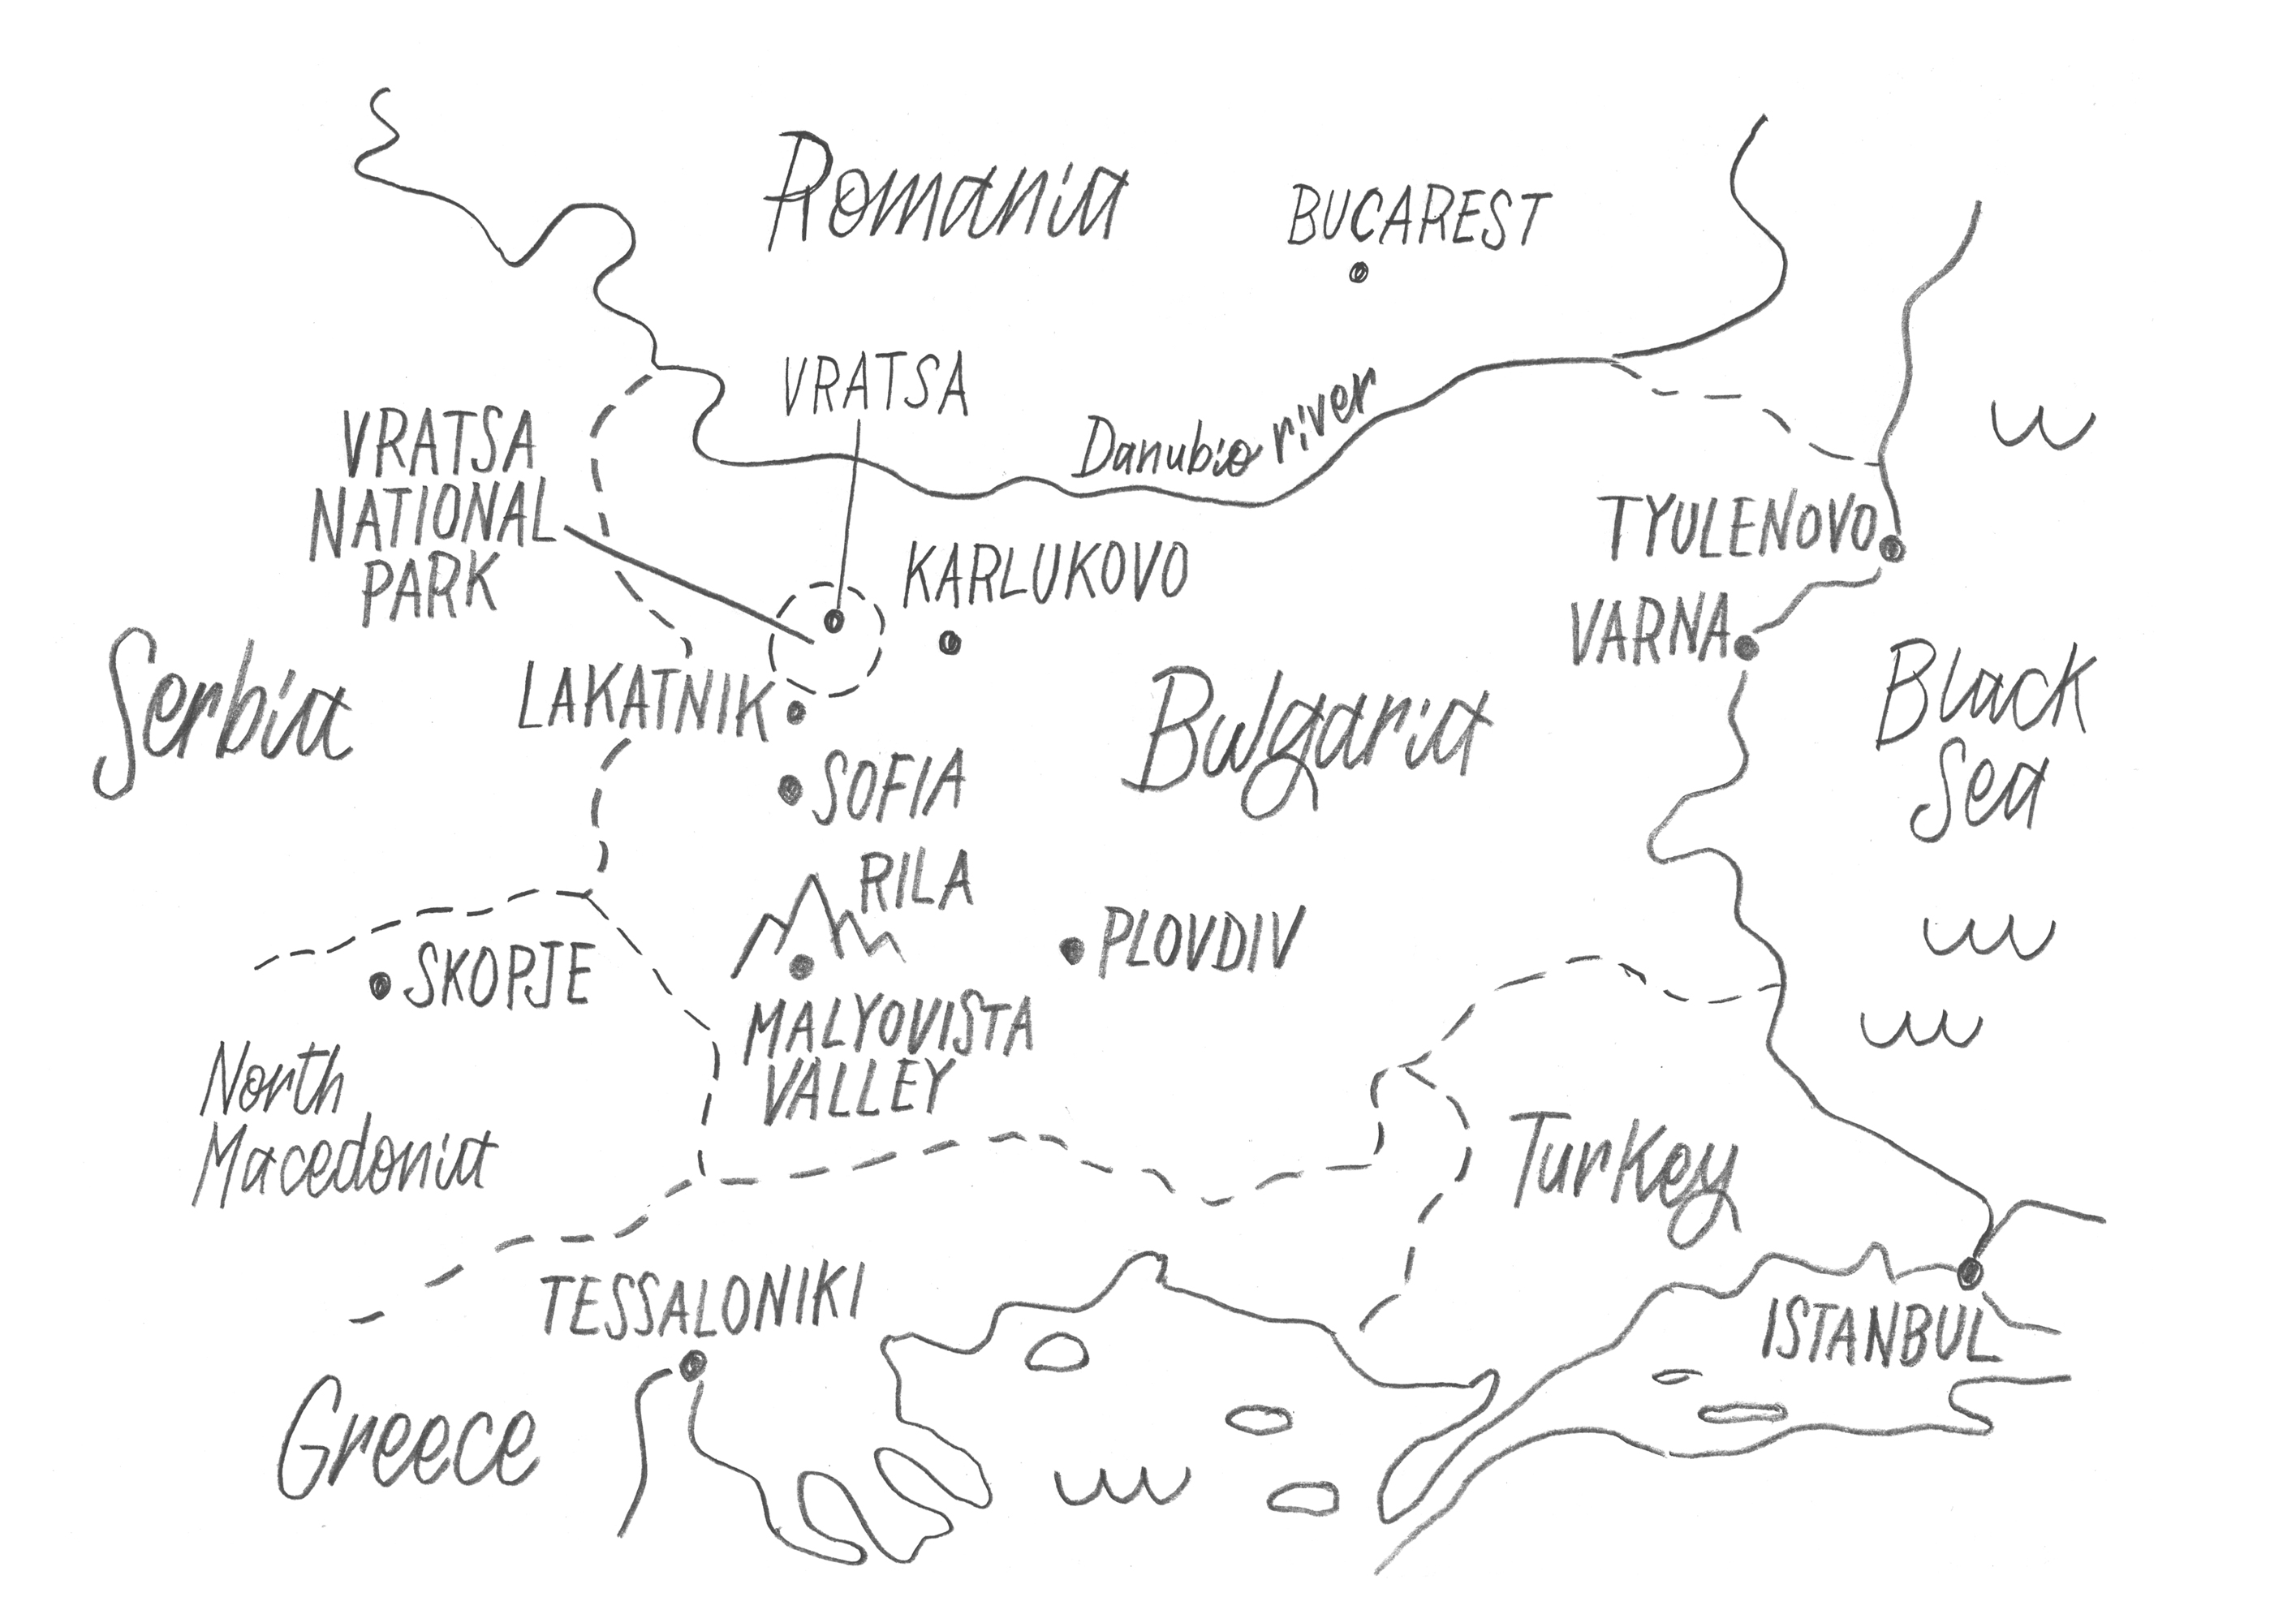 A map of the rock climbing areas in Bulgaria